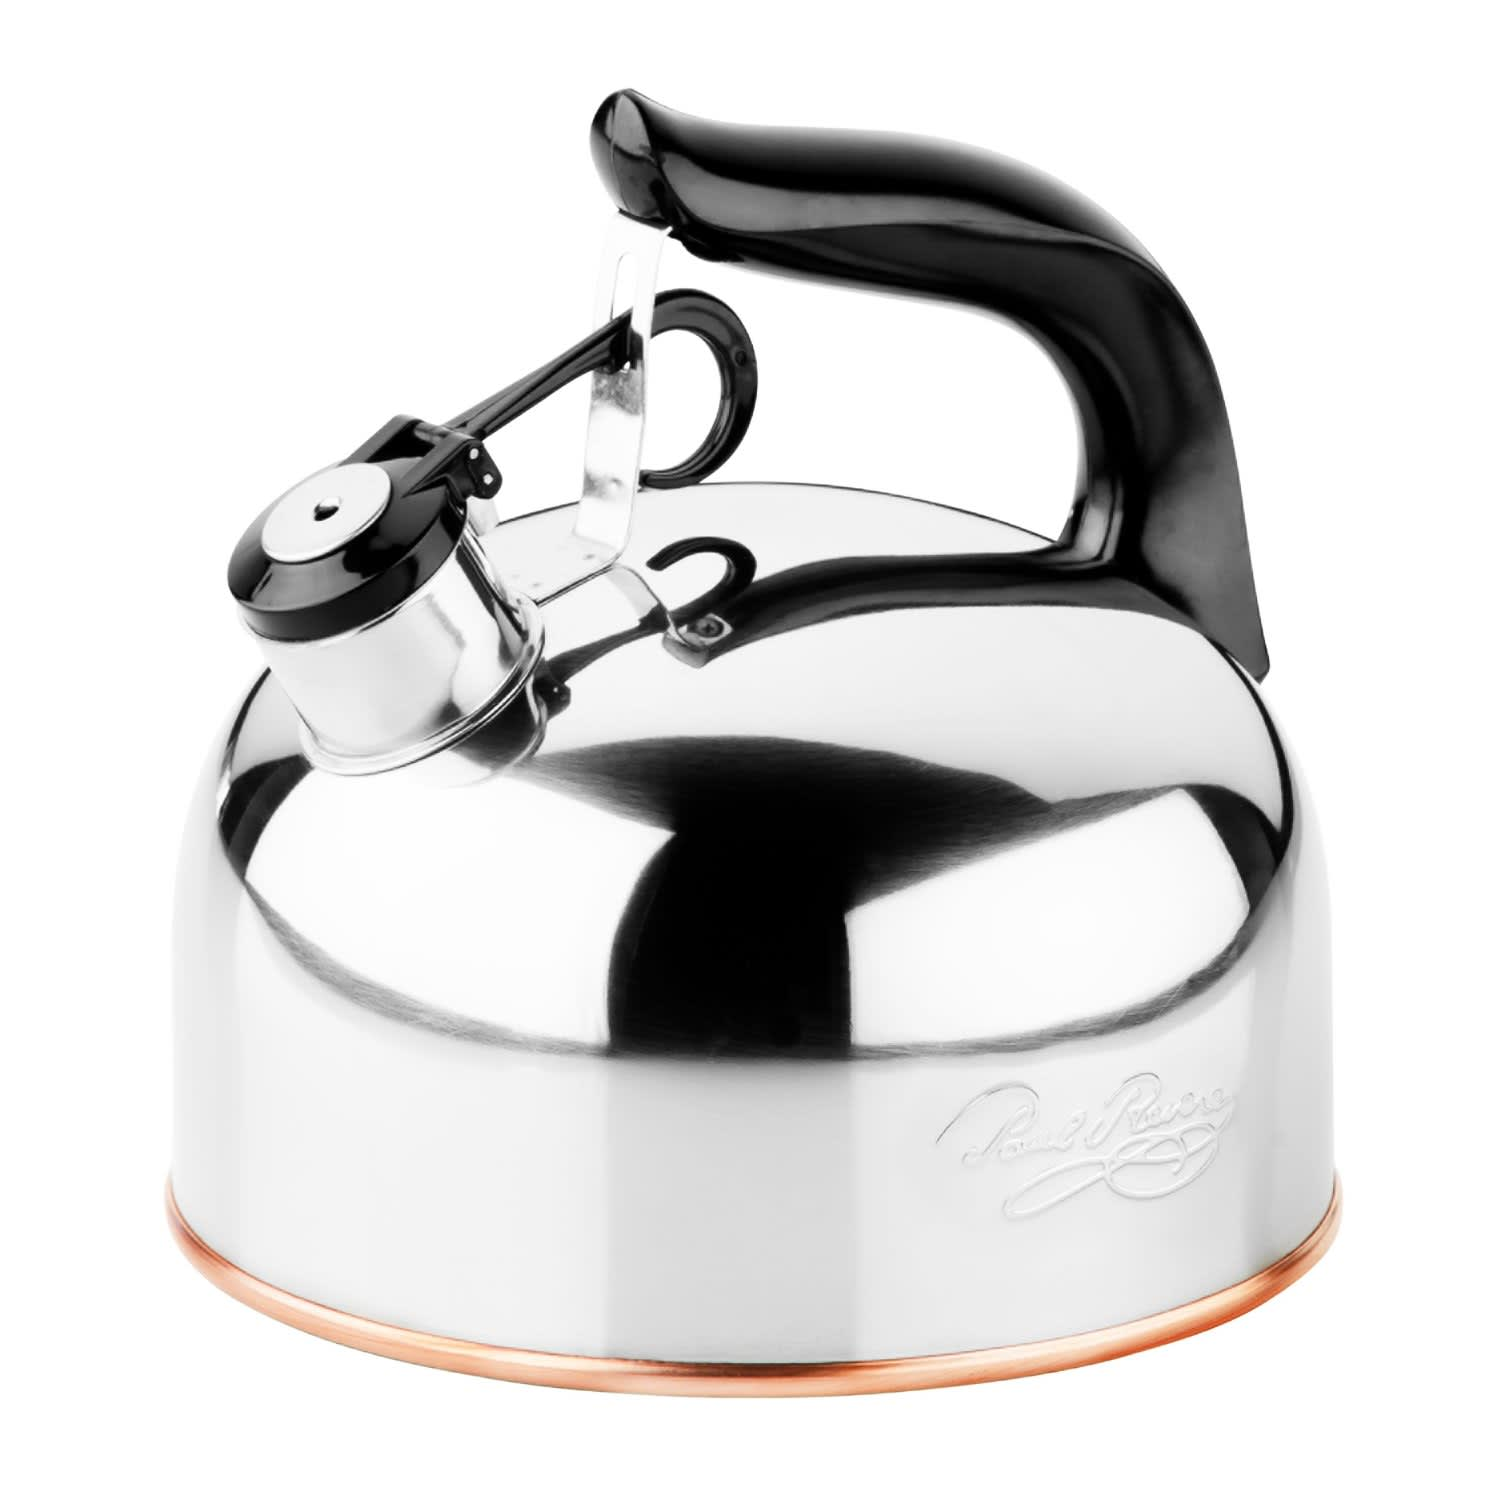 10 Timeless Tea Kettles: gallery image 3